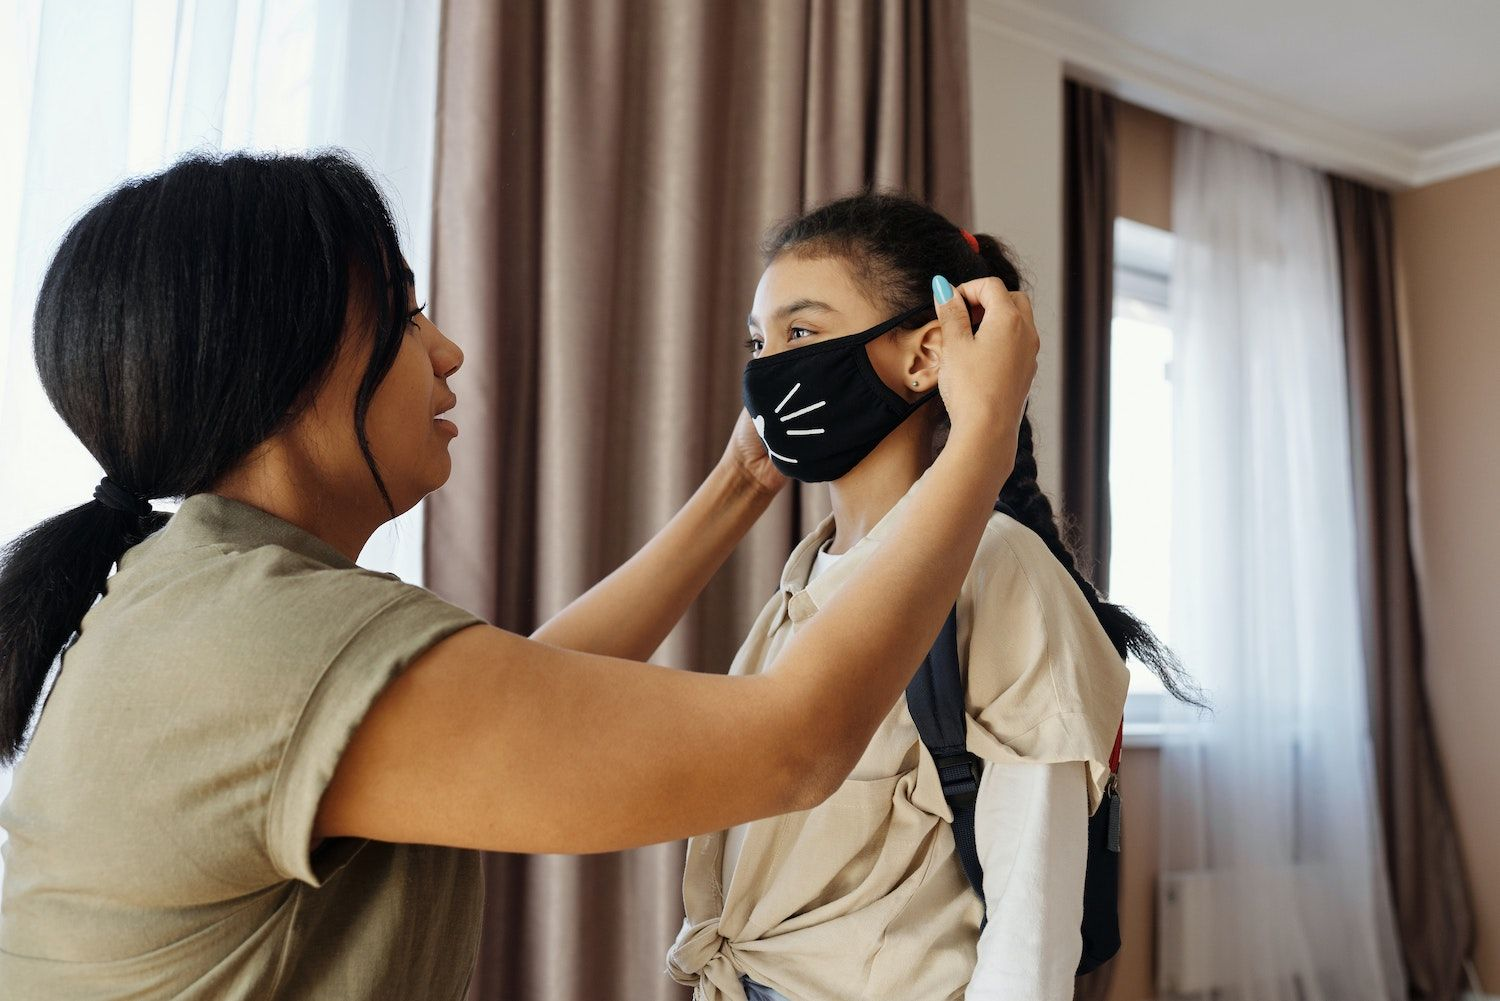 7 places to buy face masks that are giving back